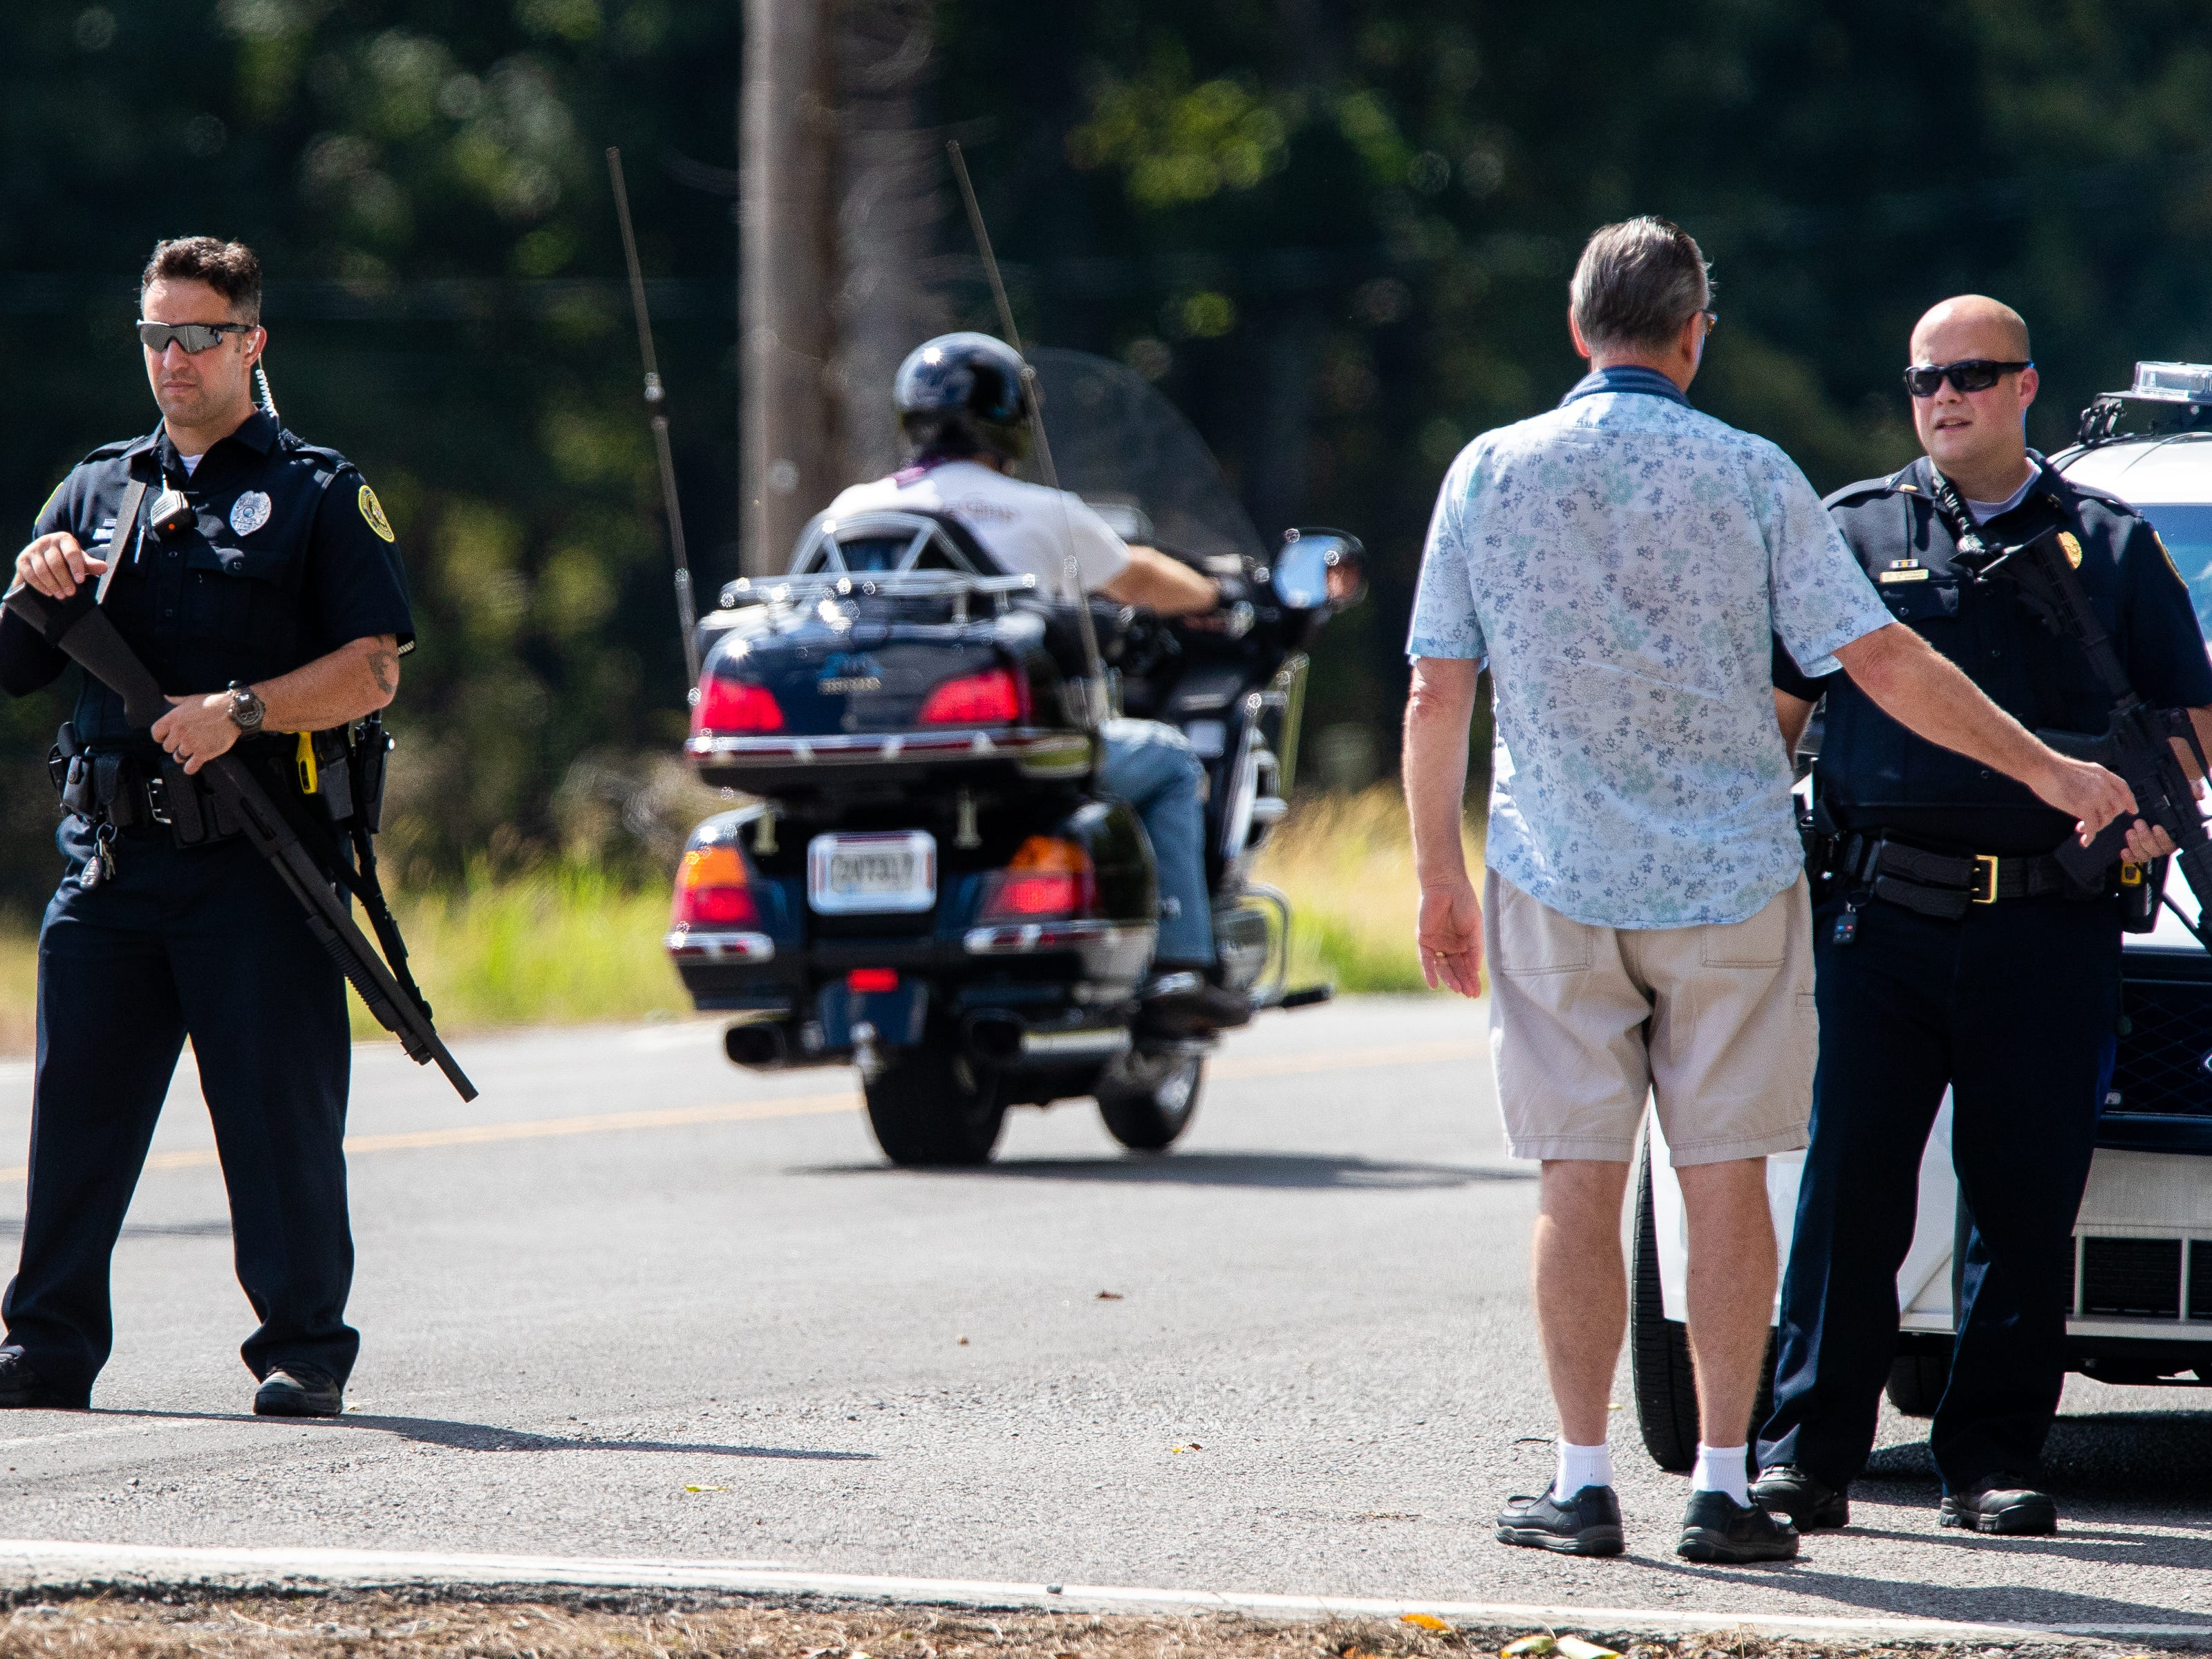 Police guard a roadblock on Lylewood Road at Cooper Creek and York Landing Roads during the search for Kirby Wallace on Wednesday, Oct. 3, 2018, in Woodlawn, Tenn.